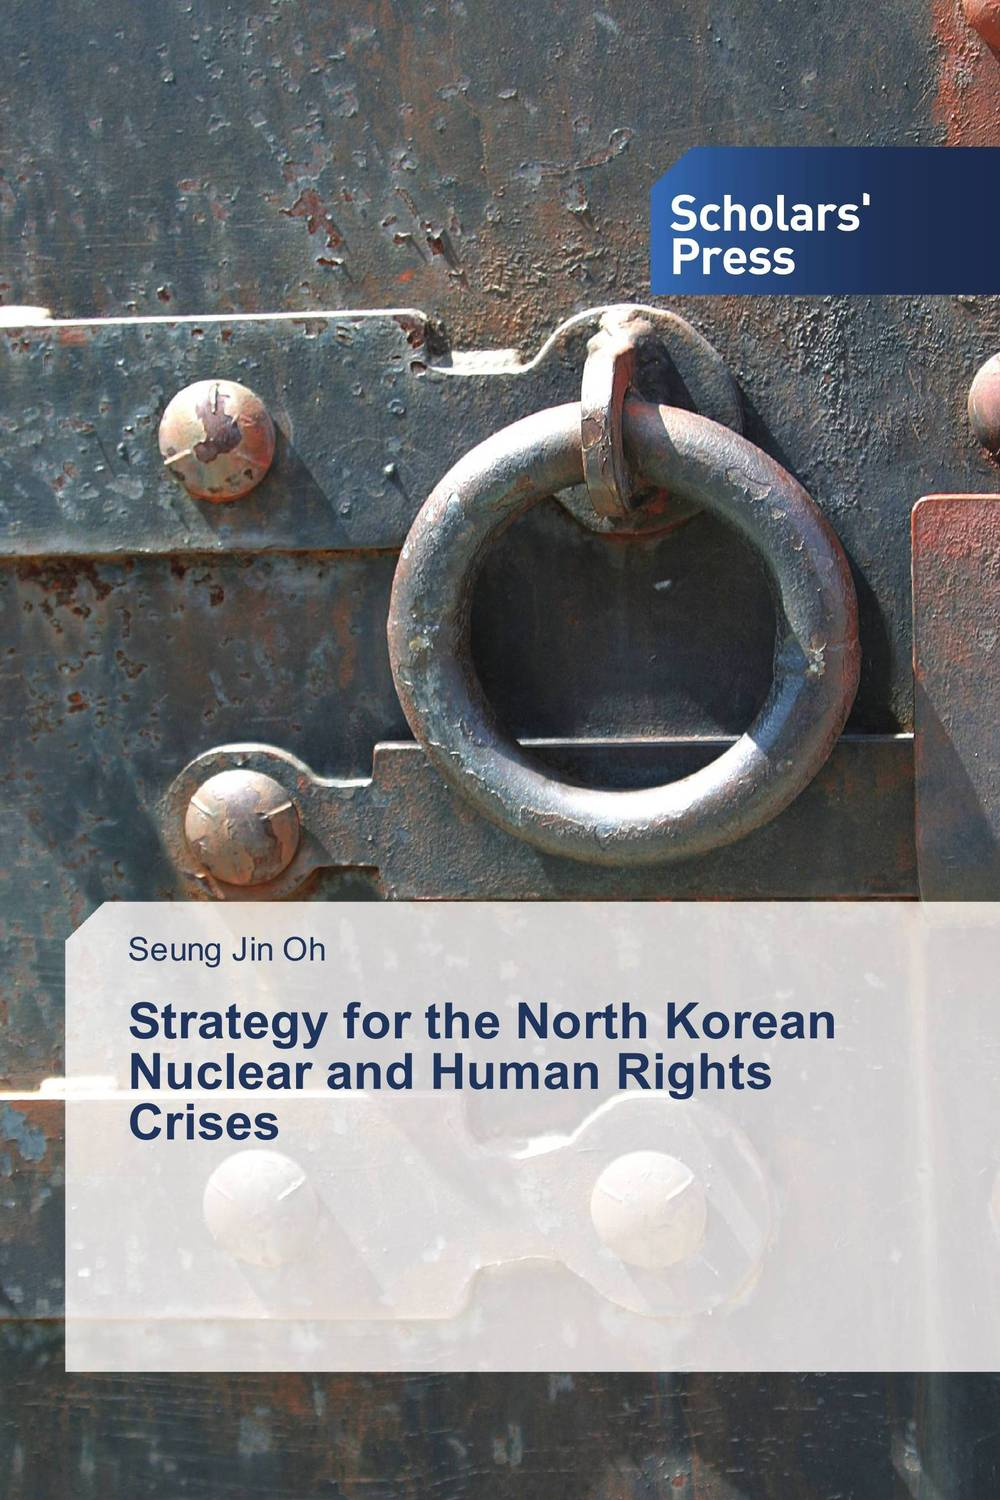 цена на Strategy for the North Korean Nuclear and Human Rights Crises